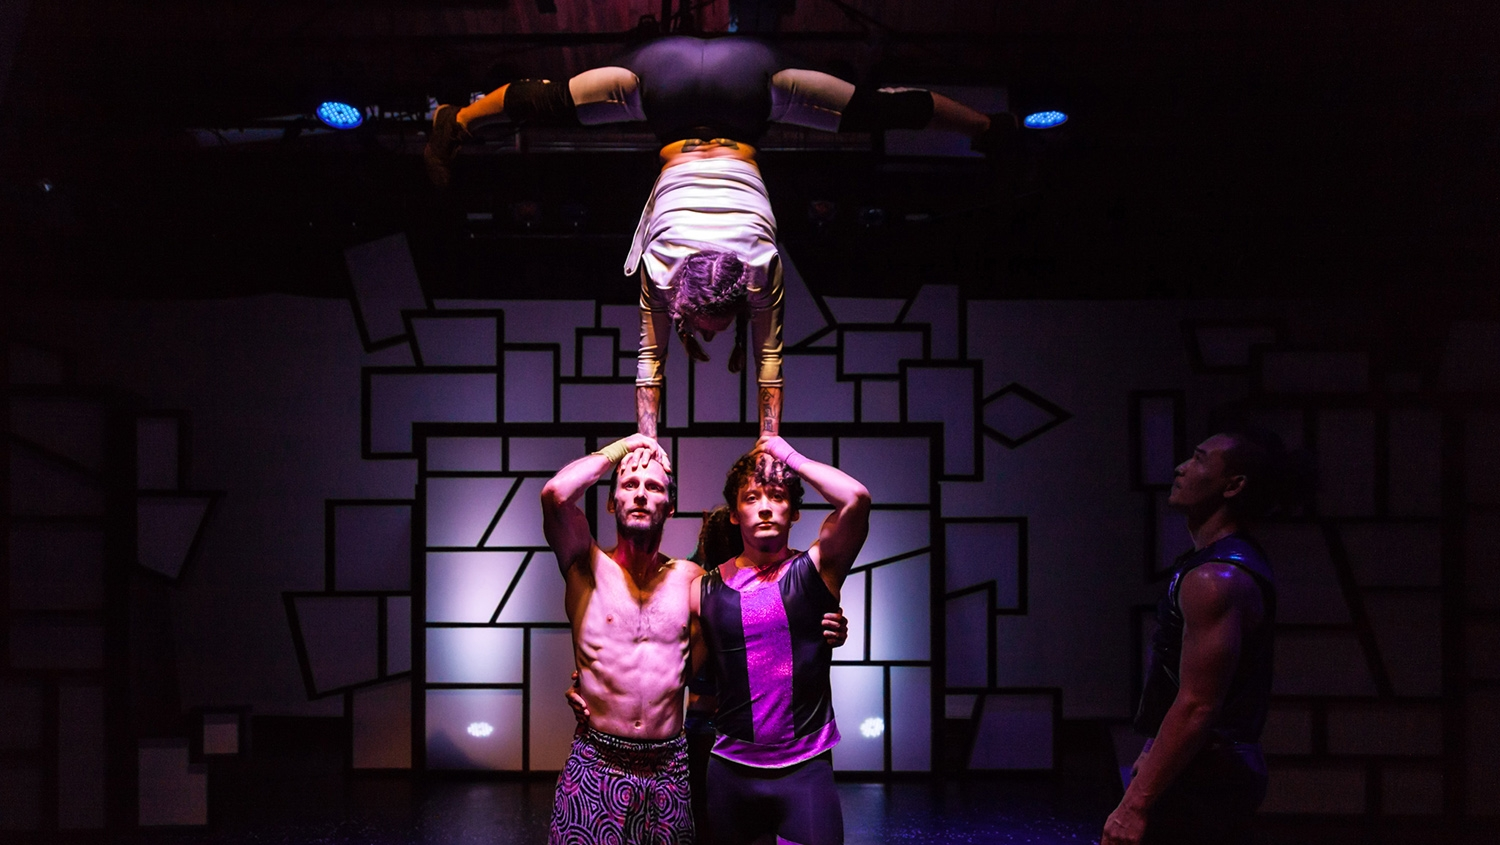 A woman doing a handstand supported by two men.